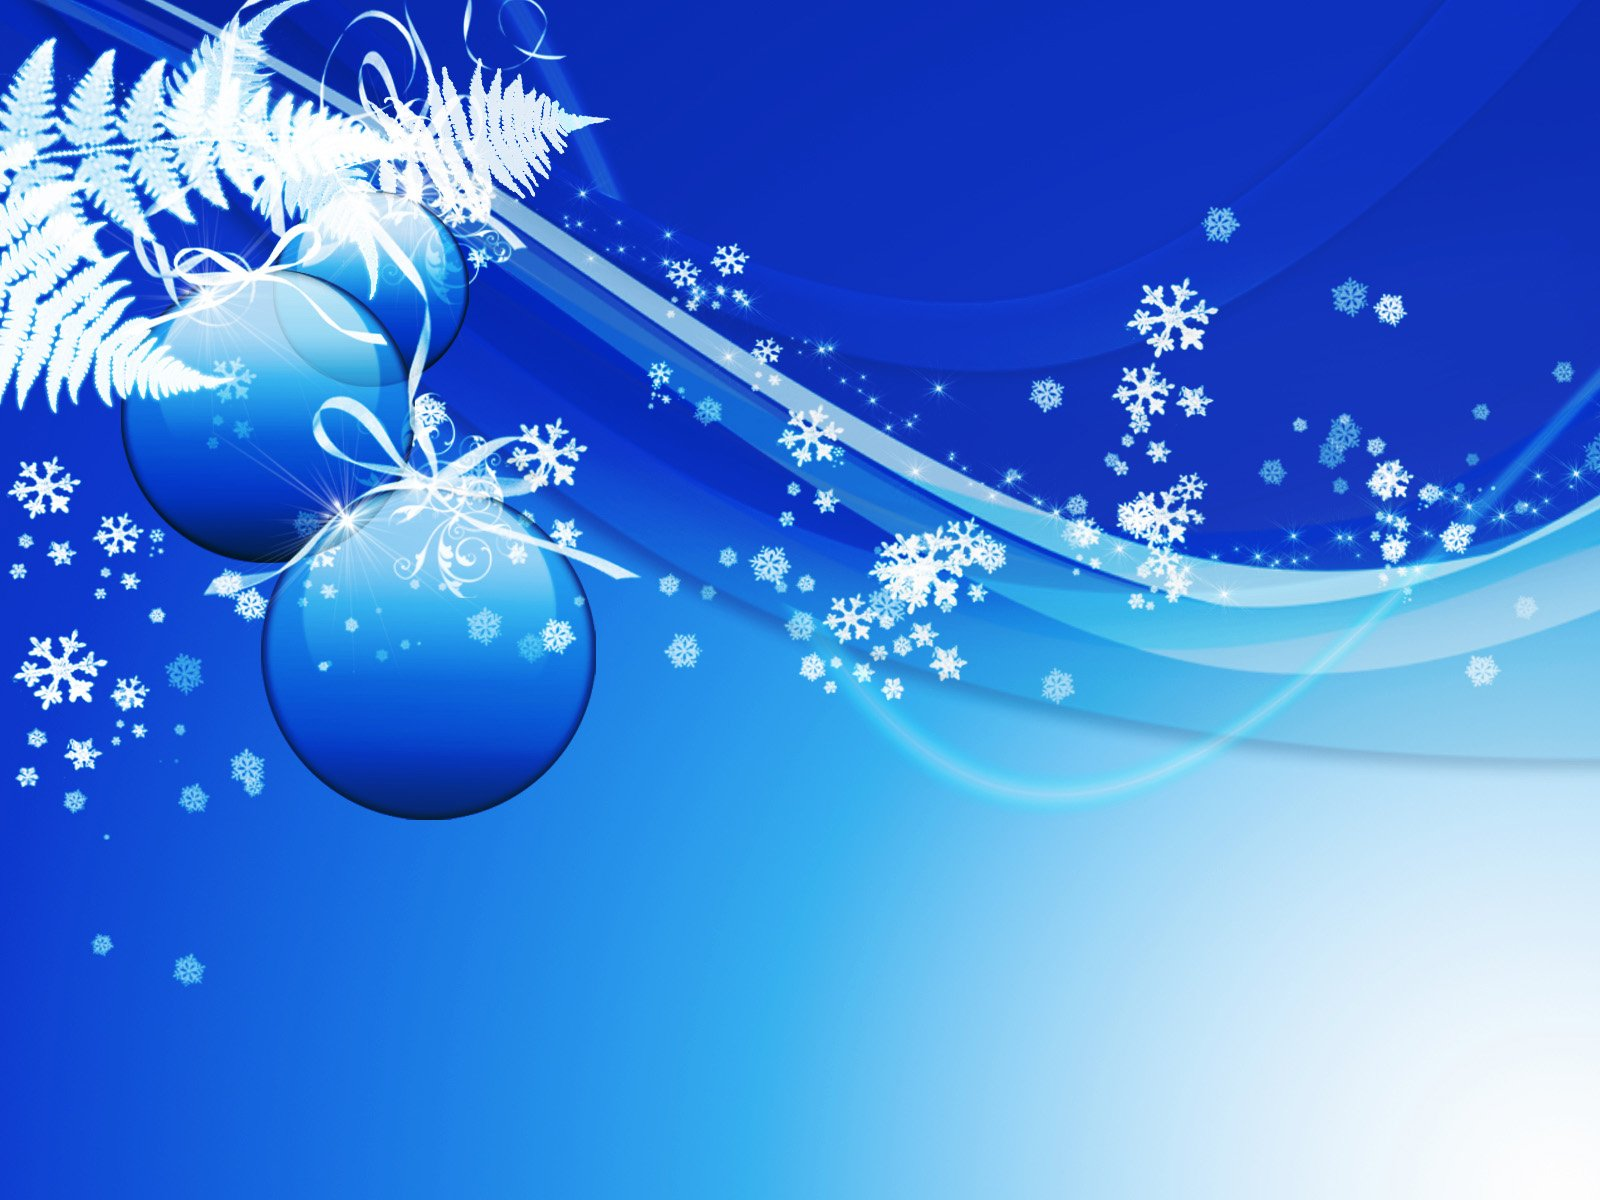 Christmas Holiday Backgrounds Wallpapers High Definition Wallpapers 1600x1200